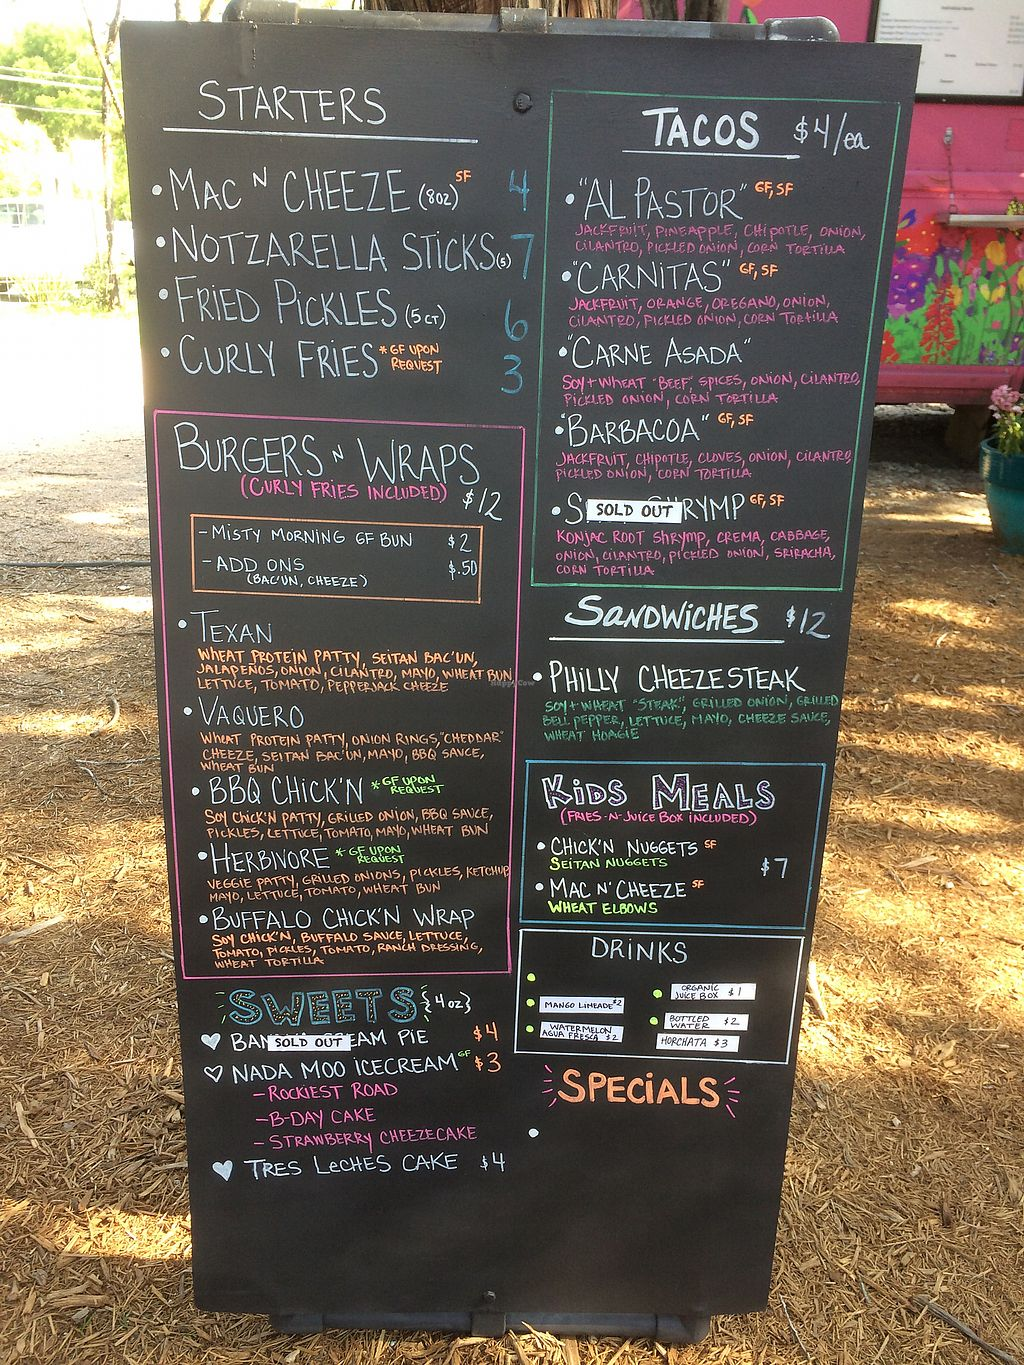 """Photo of Revolution Vegan Kitchen - Food Truck  by <a href=""""/members/profile/AlishaM"""">AlishaM</a> <br/>Menu <br/> May 12, 2018  - <a href='/contact/abuse/image/86943/398905'>Report</a>"""